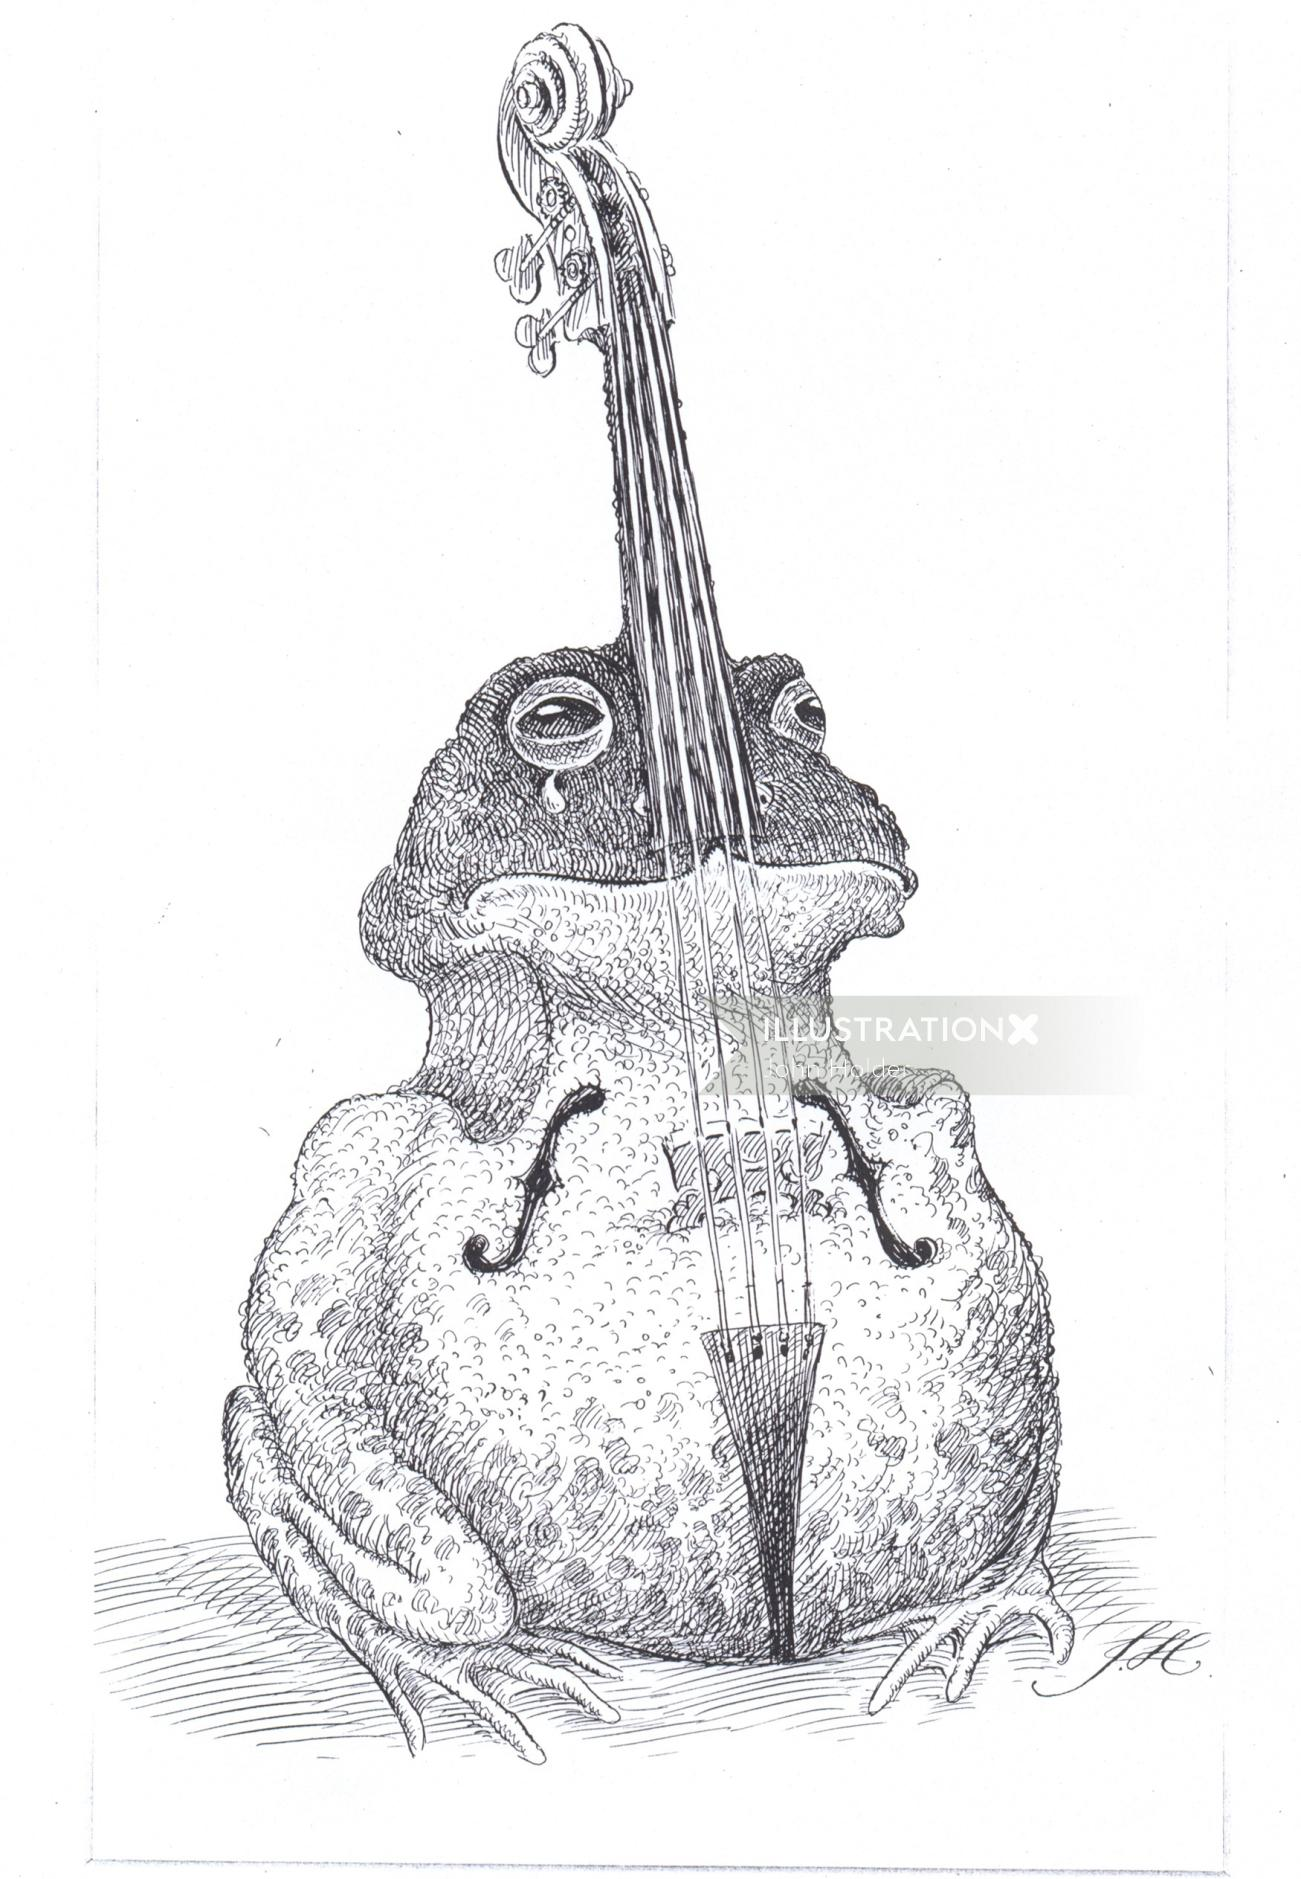 Veteran pen art of a frog in violin shape